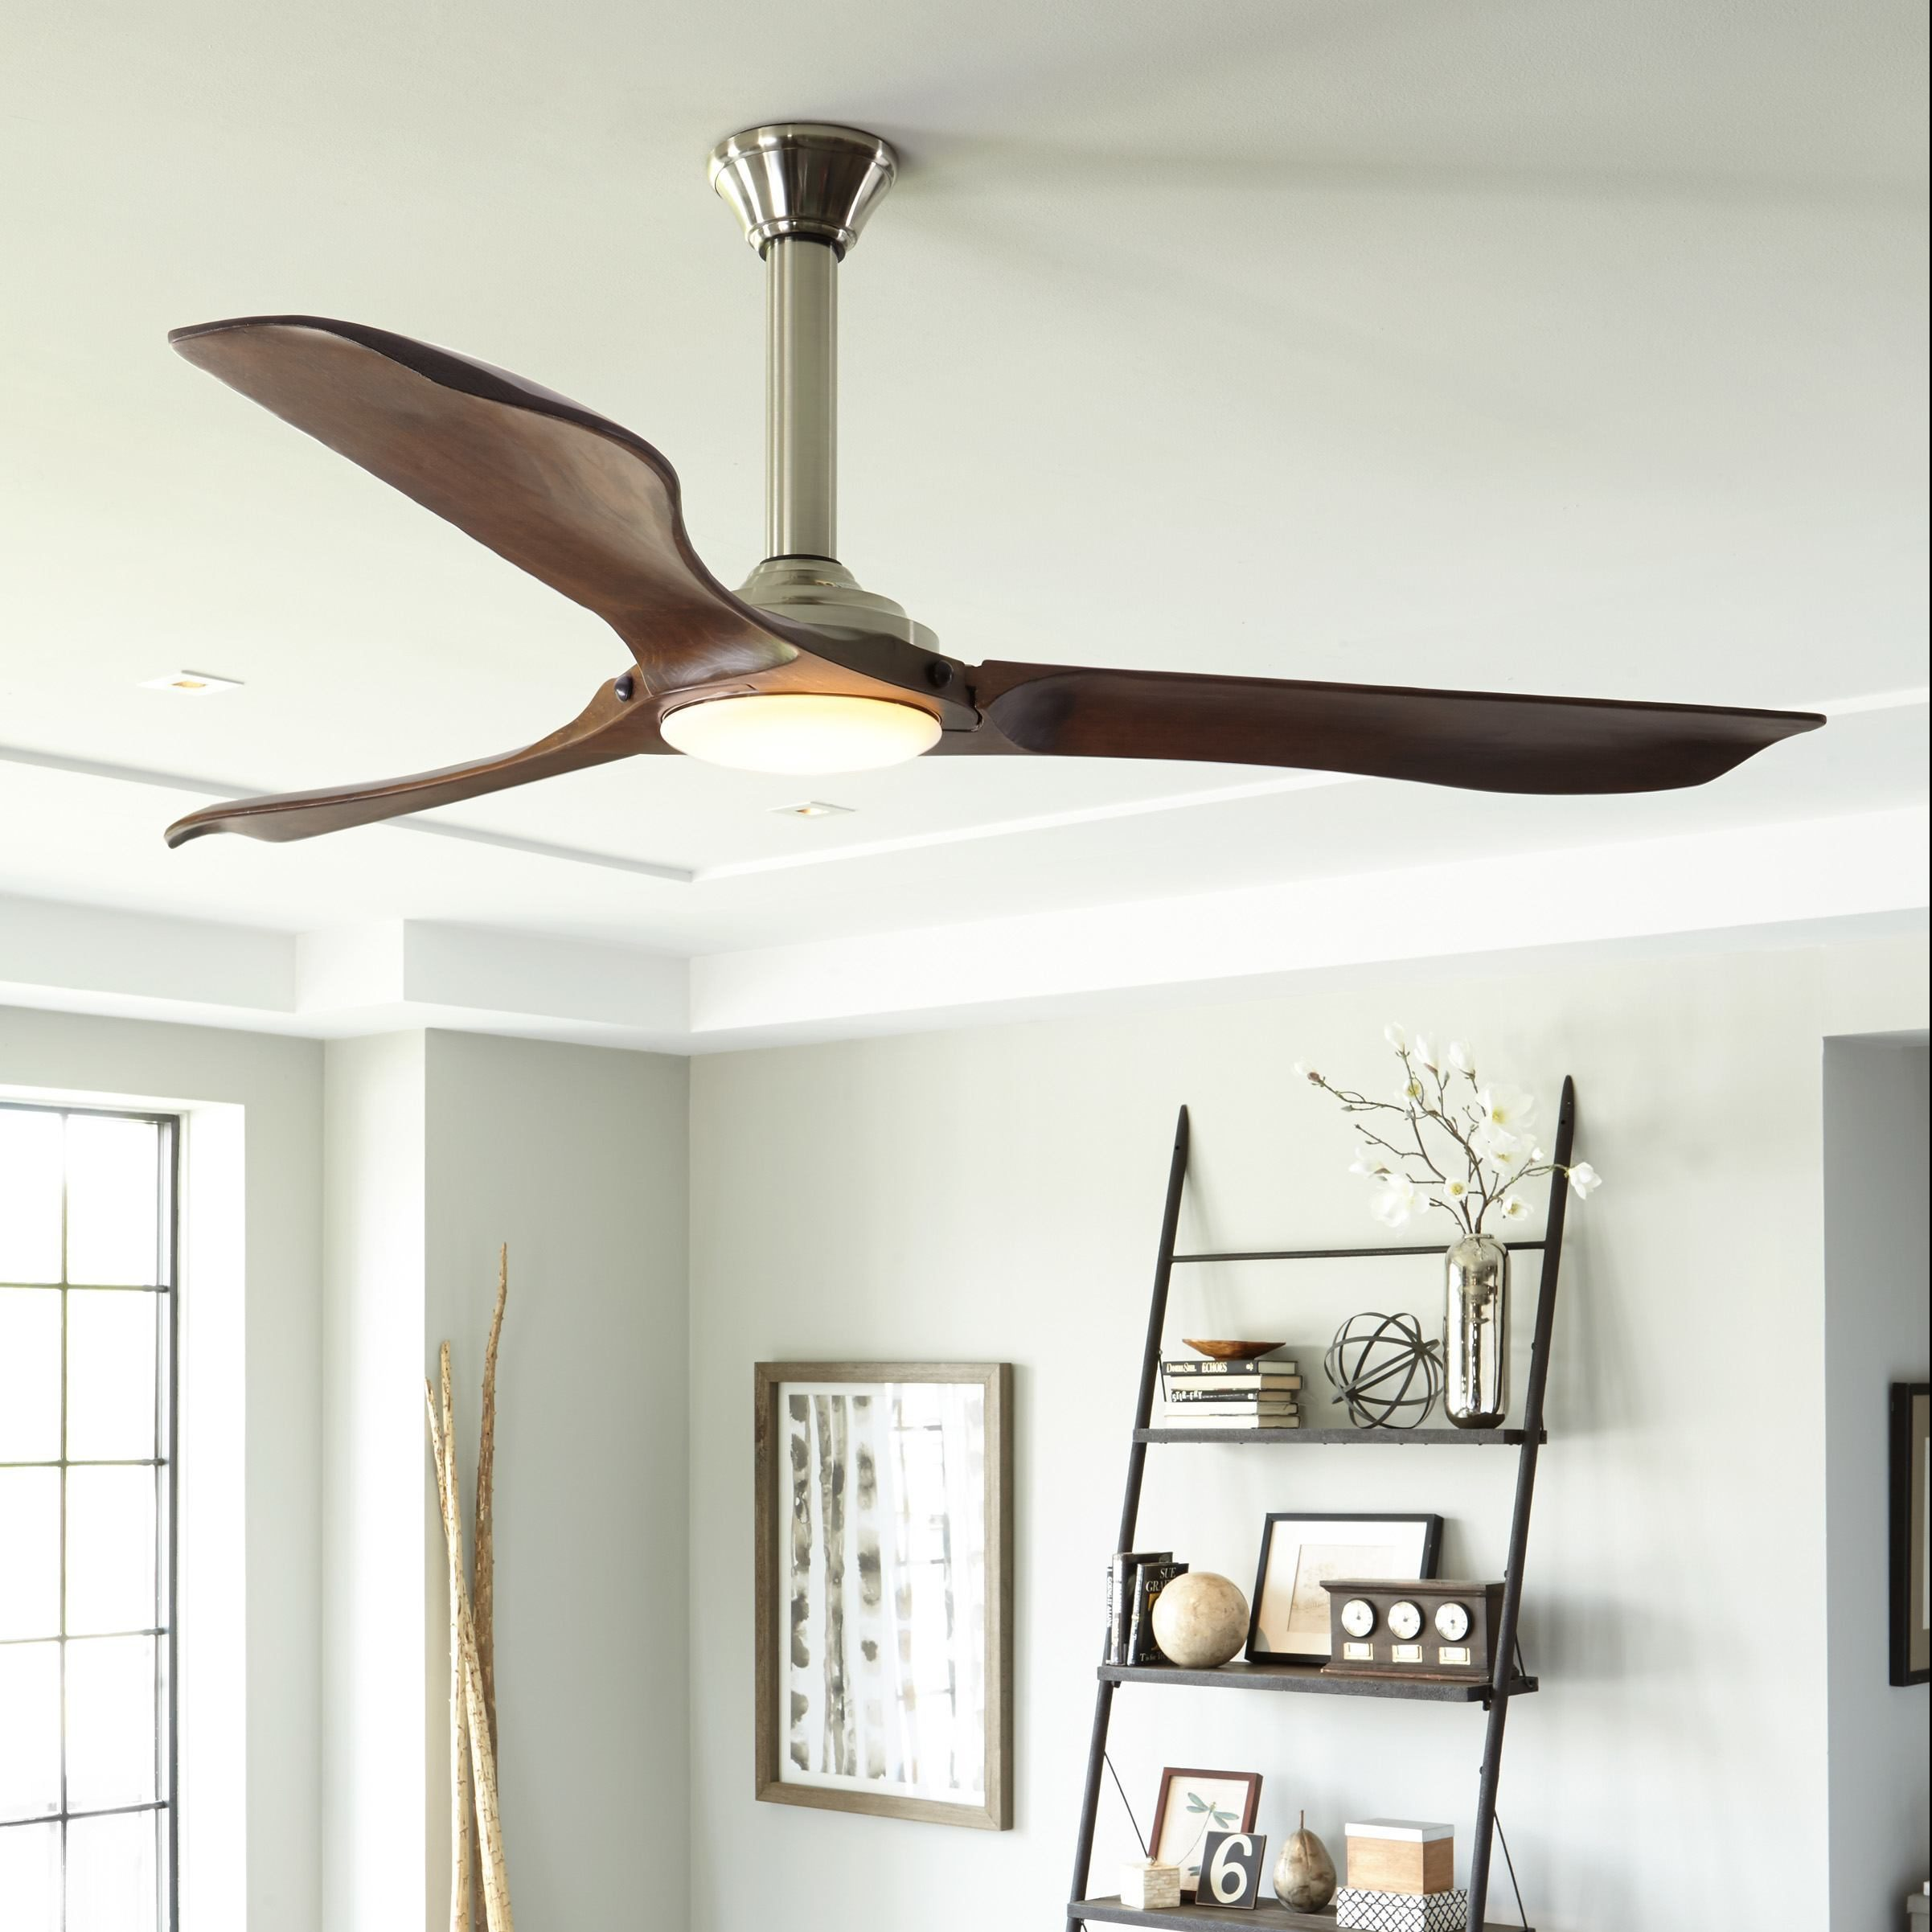 Best Ceiling Fans For Small Rooms How To Choose A Ceiling Fan Size Guide Blades Airflow